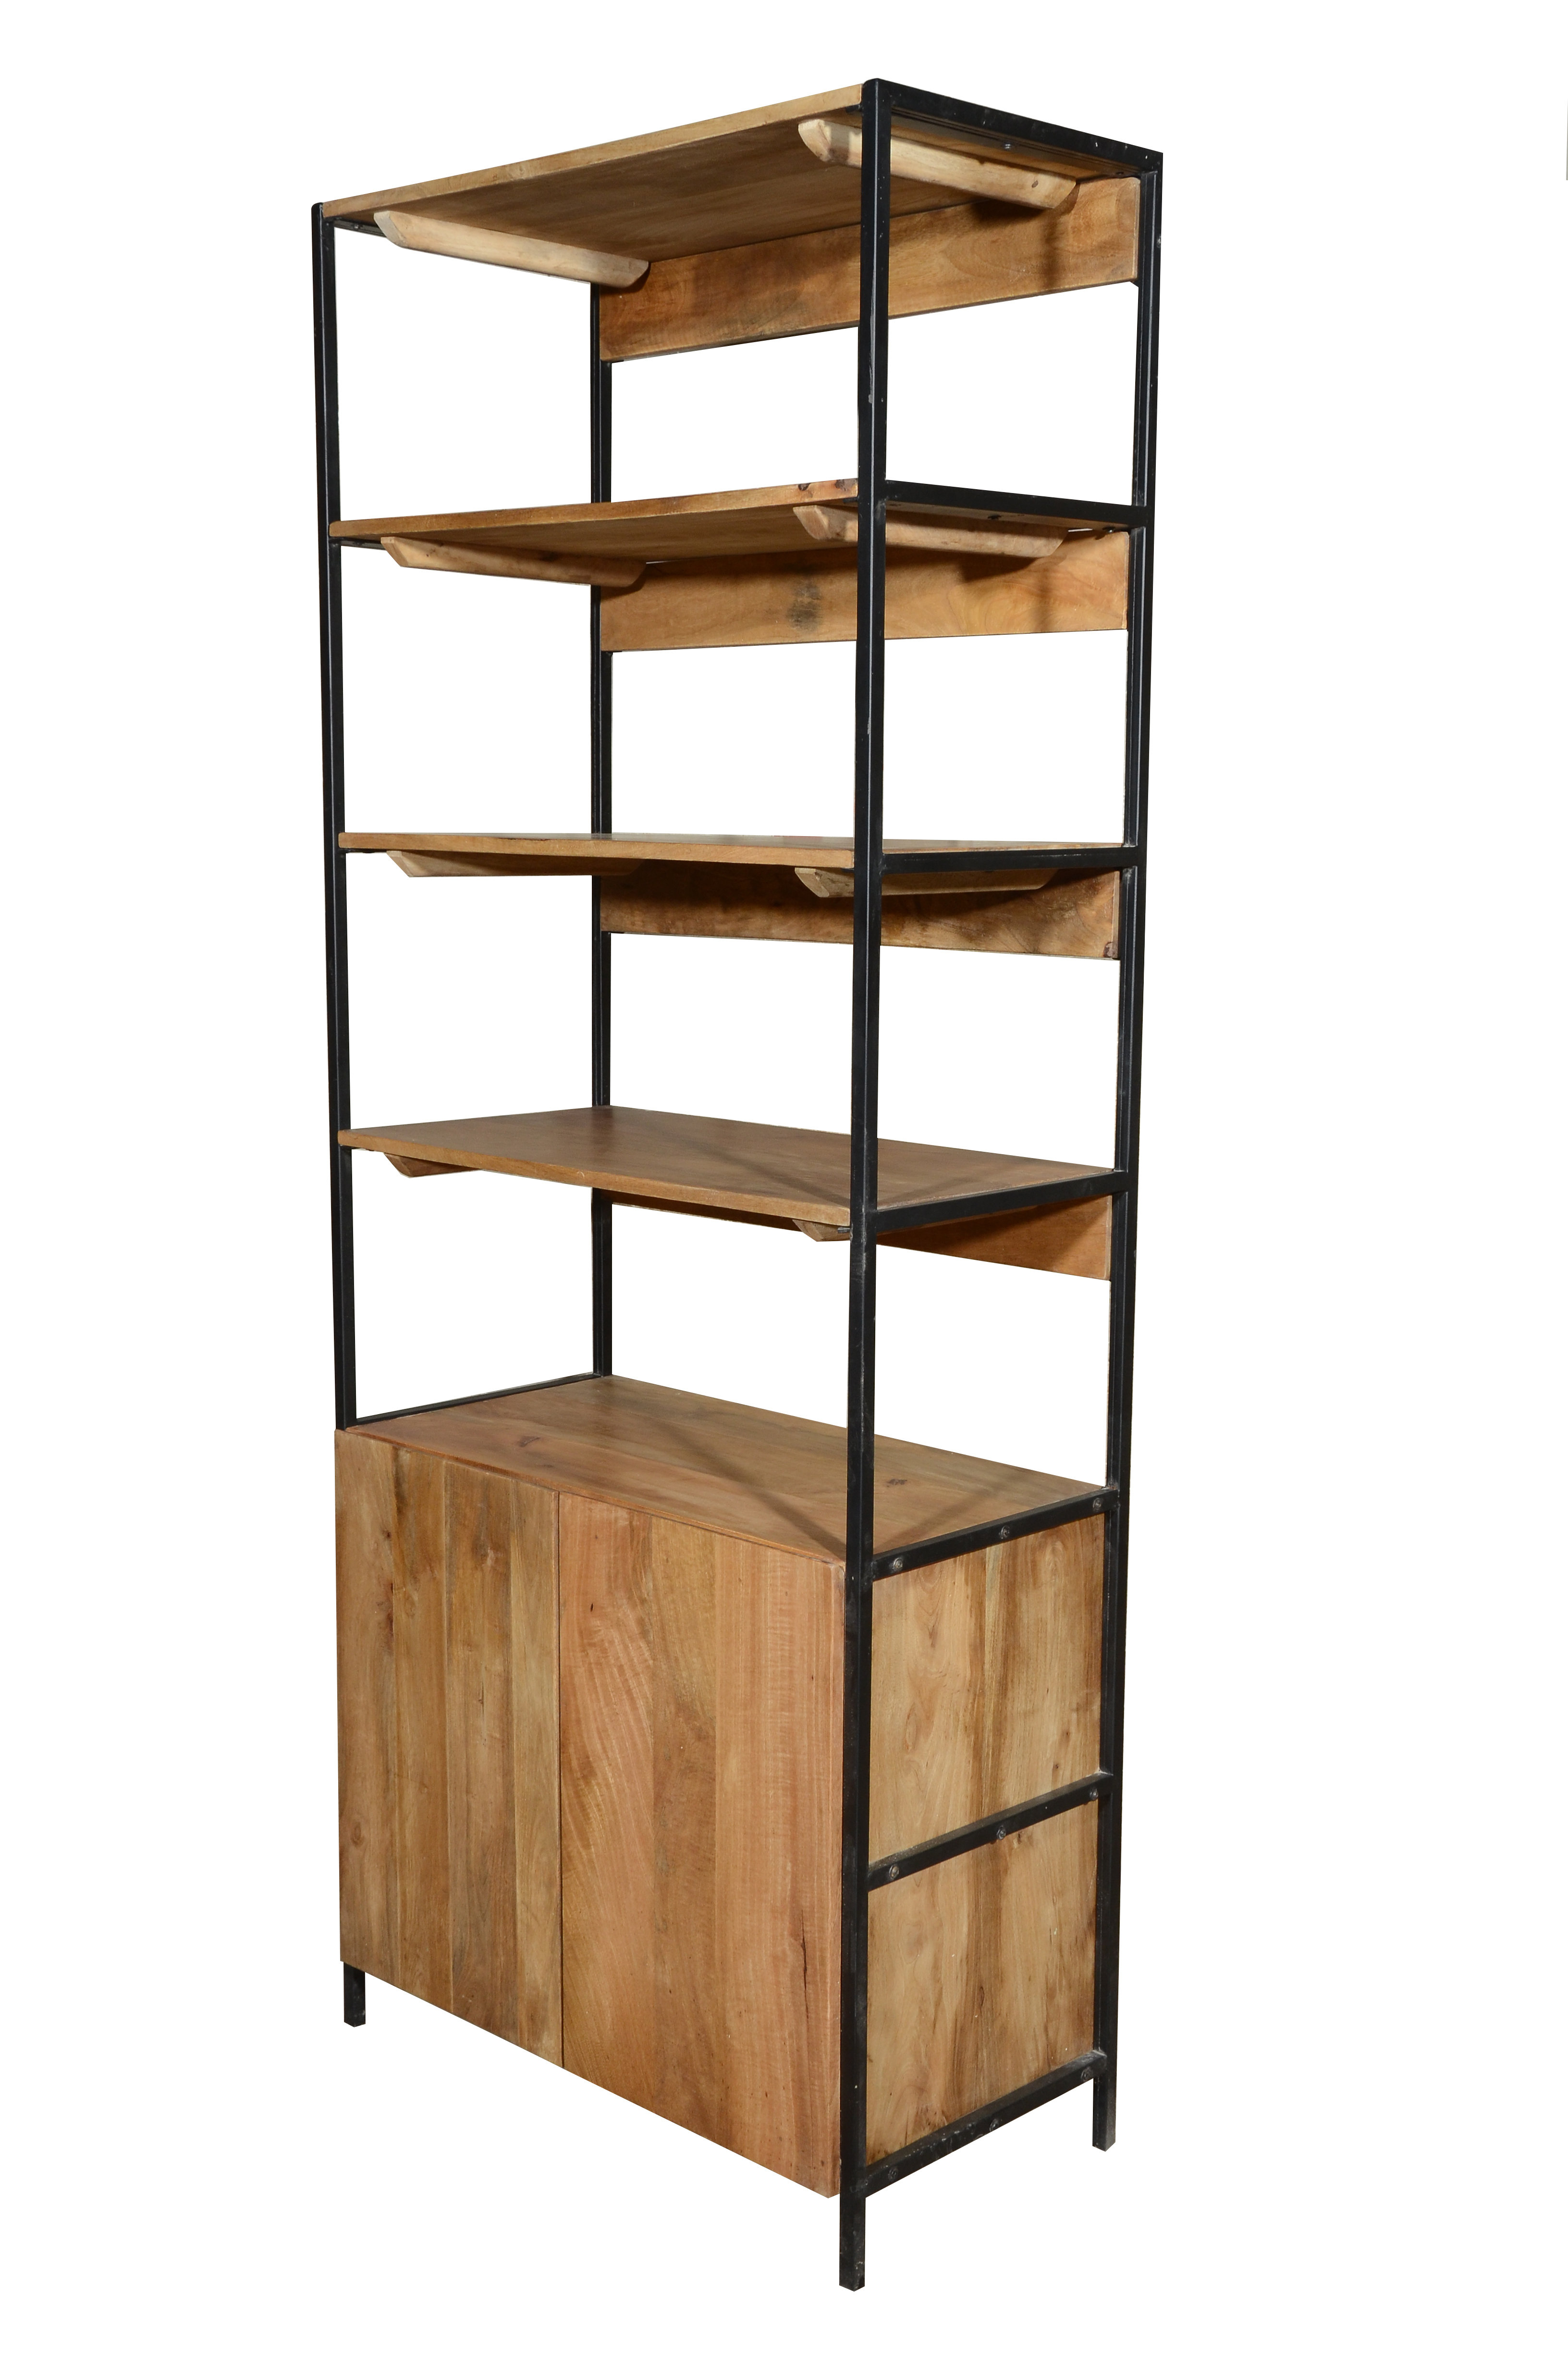 Etagere Bookcase Pertaining To Famous Woodcrest Etagere Bookcases (View 4 of 20)